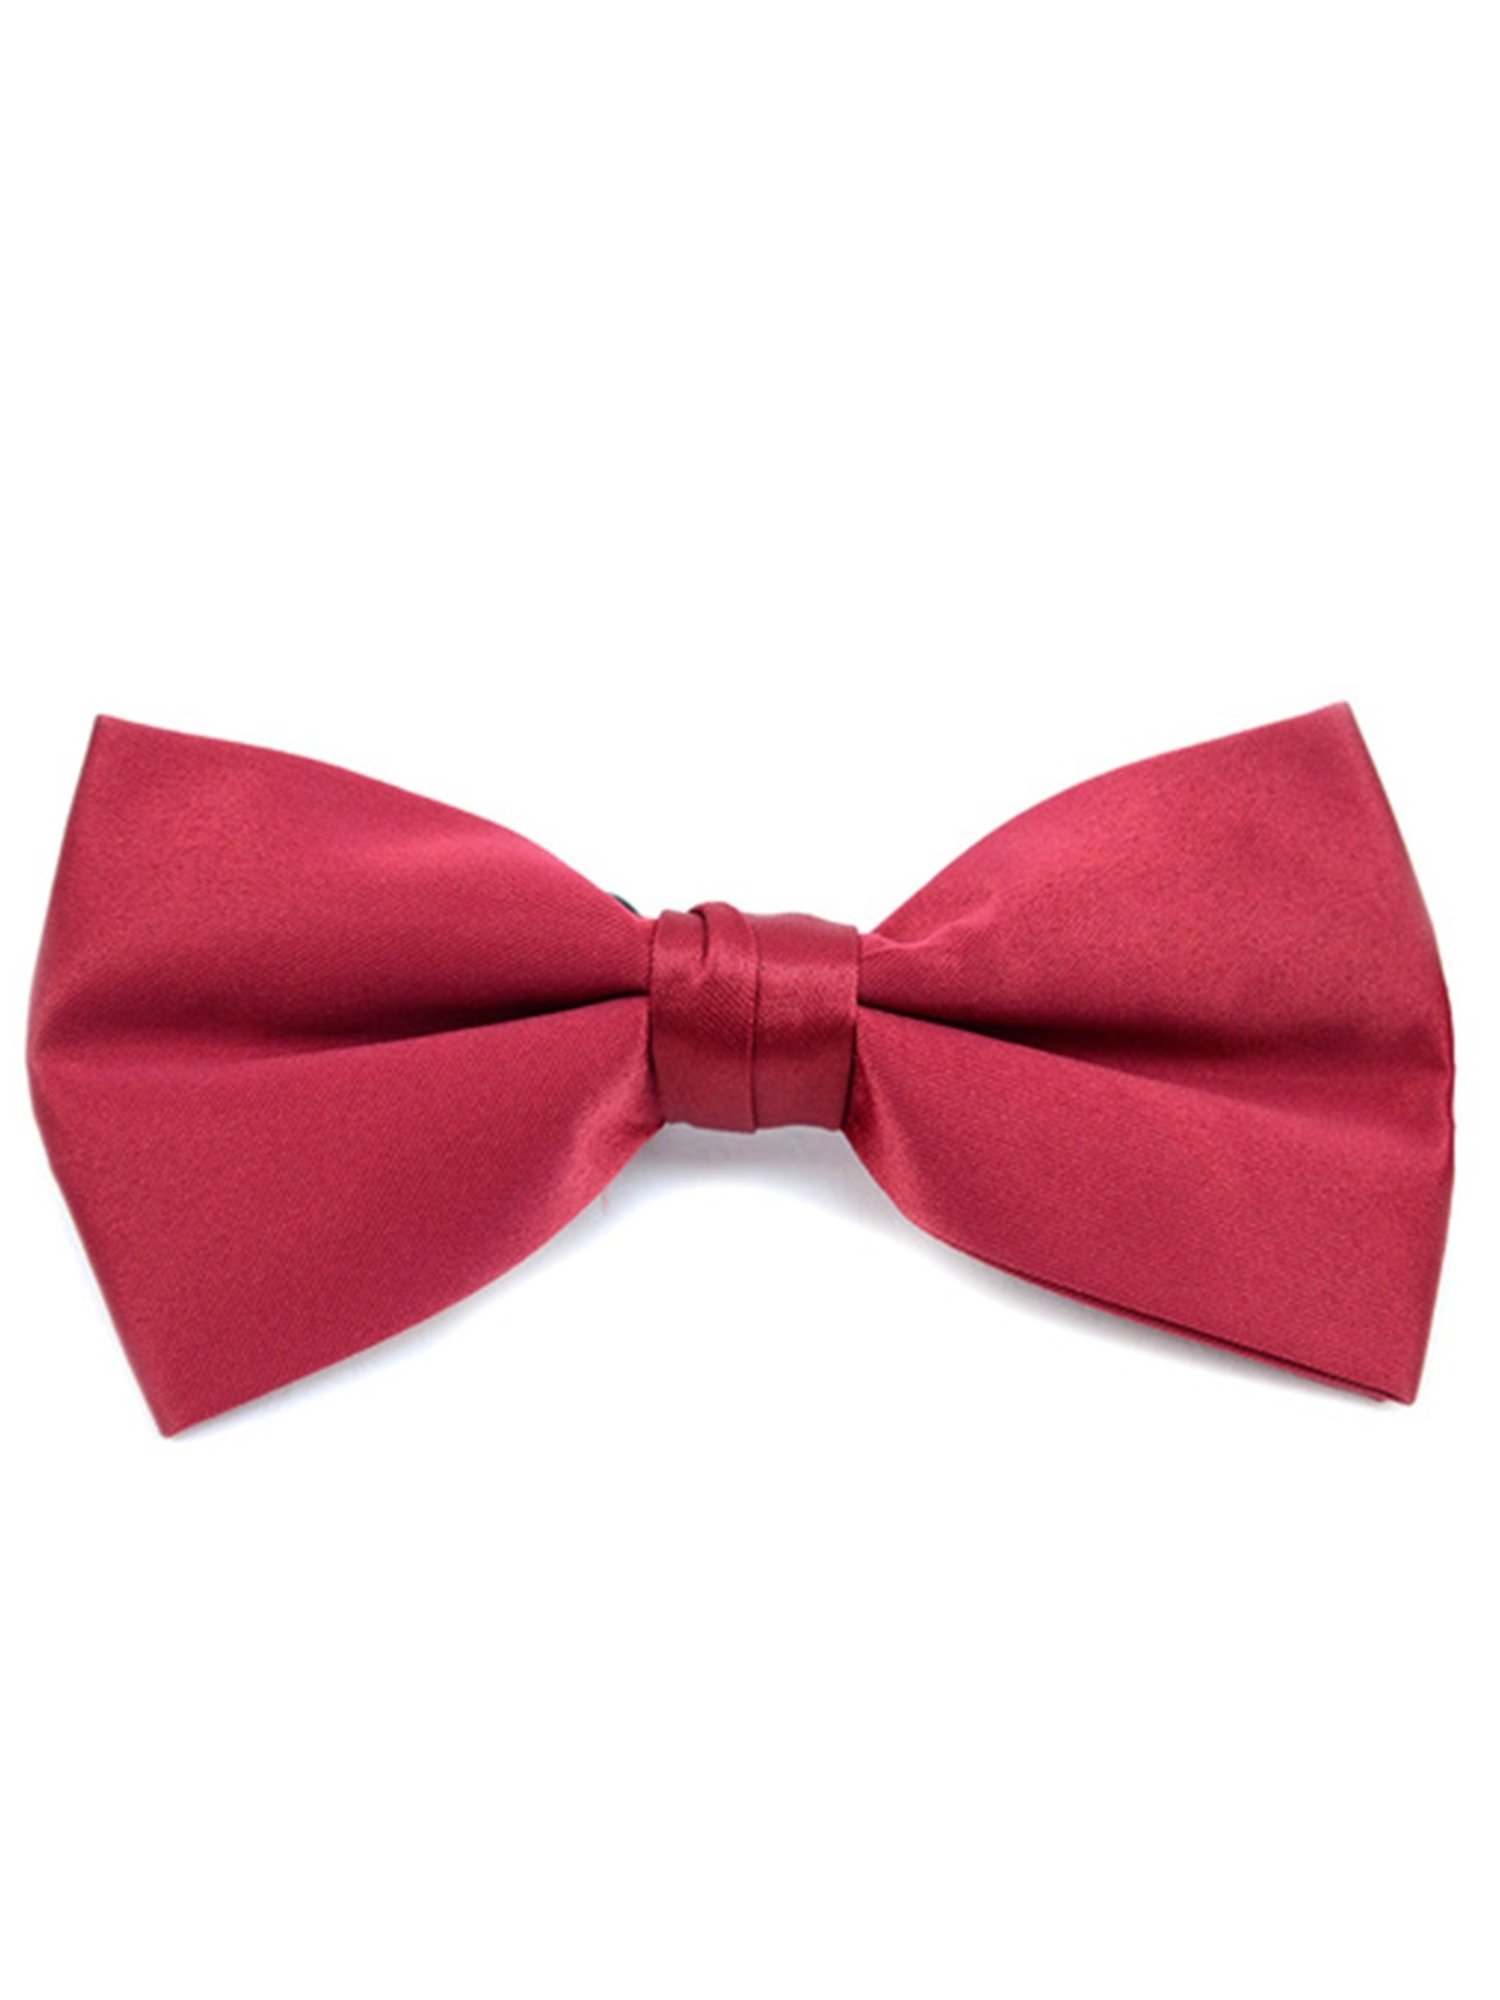 Young Boy's Burgundy Pre-tied Clip On Bow Tie - Formal Tuxedo Solid Color